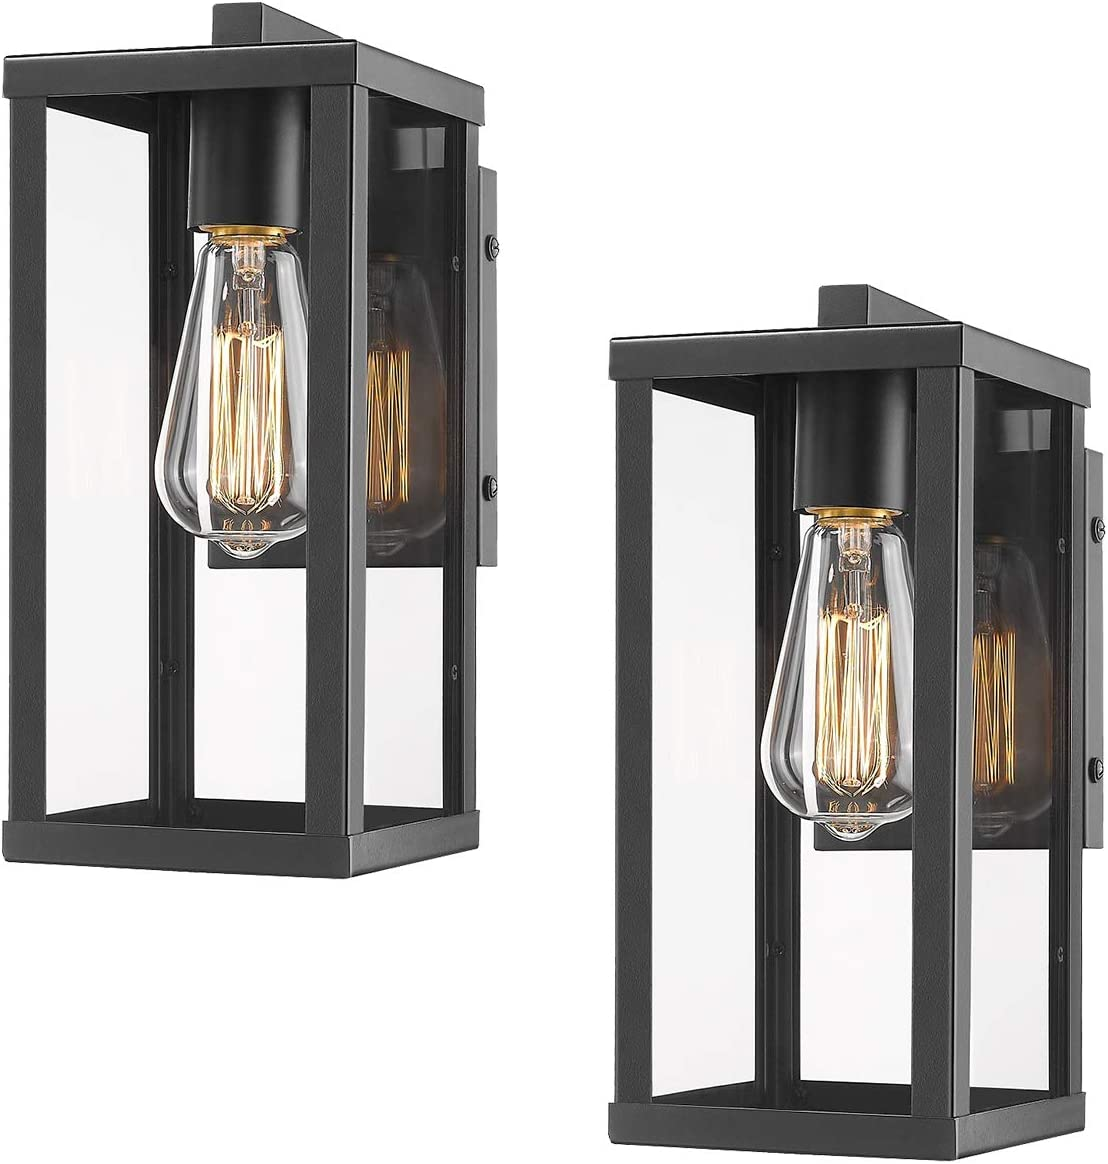 Odeums Outdoor Wall Lantern, Exterior Wall Mount Lights, Outdoor Wall Sconces, Wall Lighting Fixture (2 Pack)